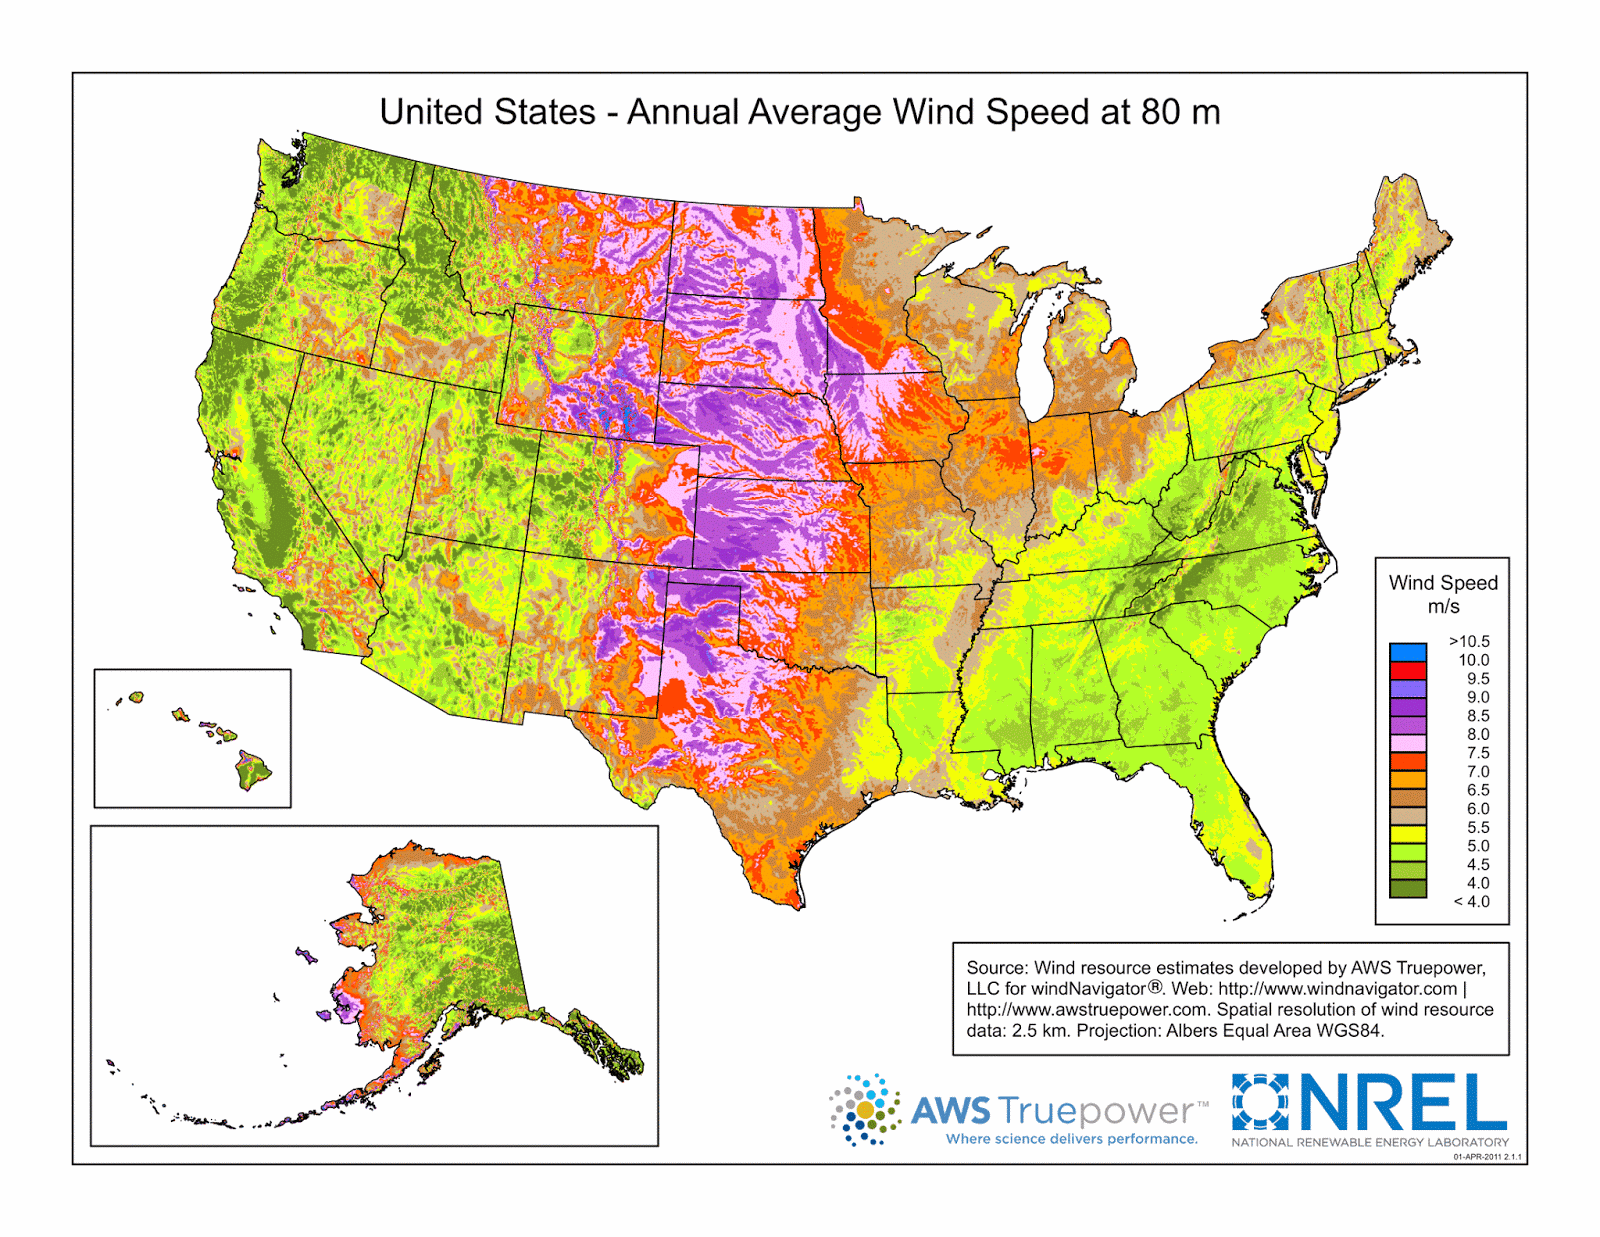 Wind Speed Map for the U.S.